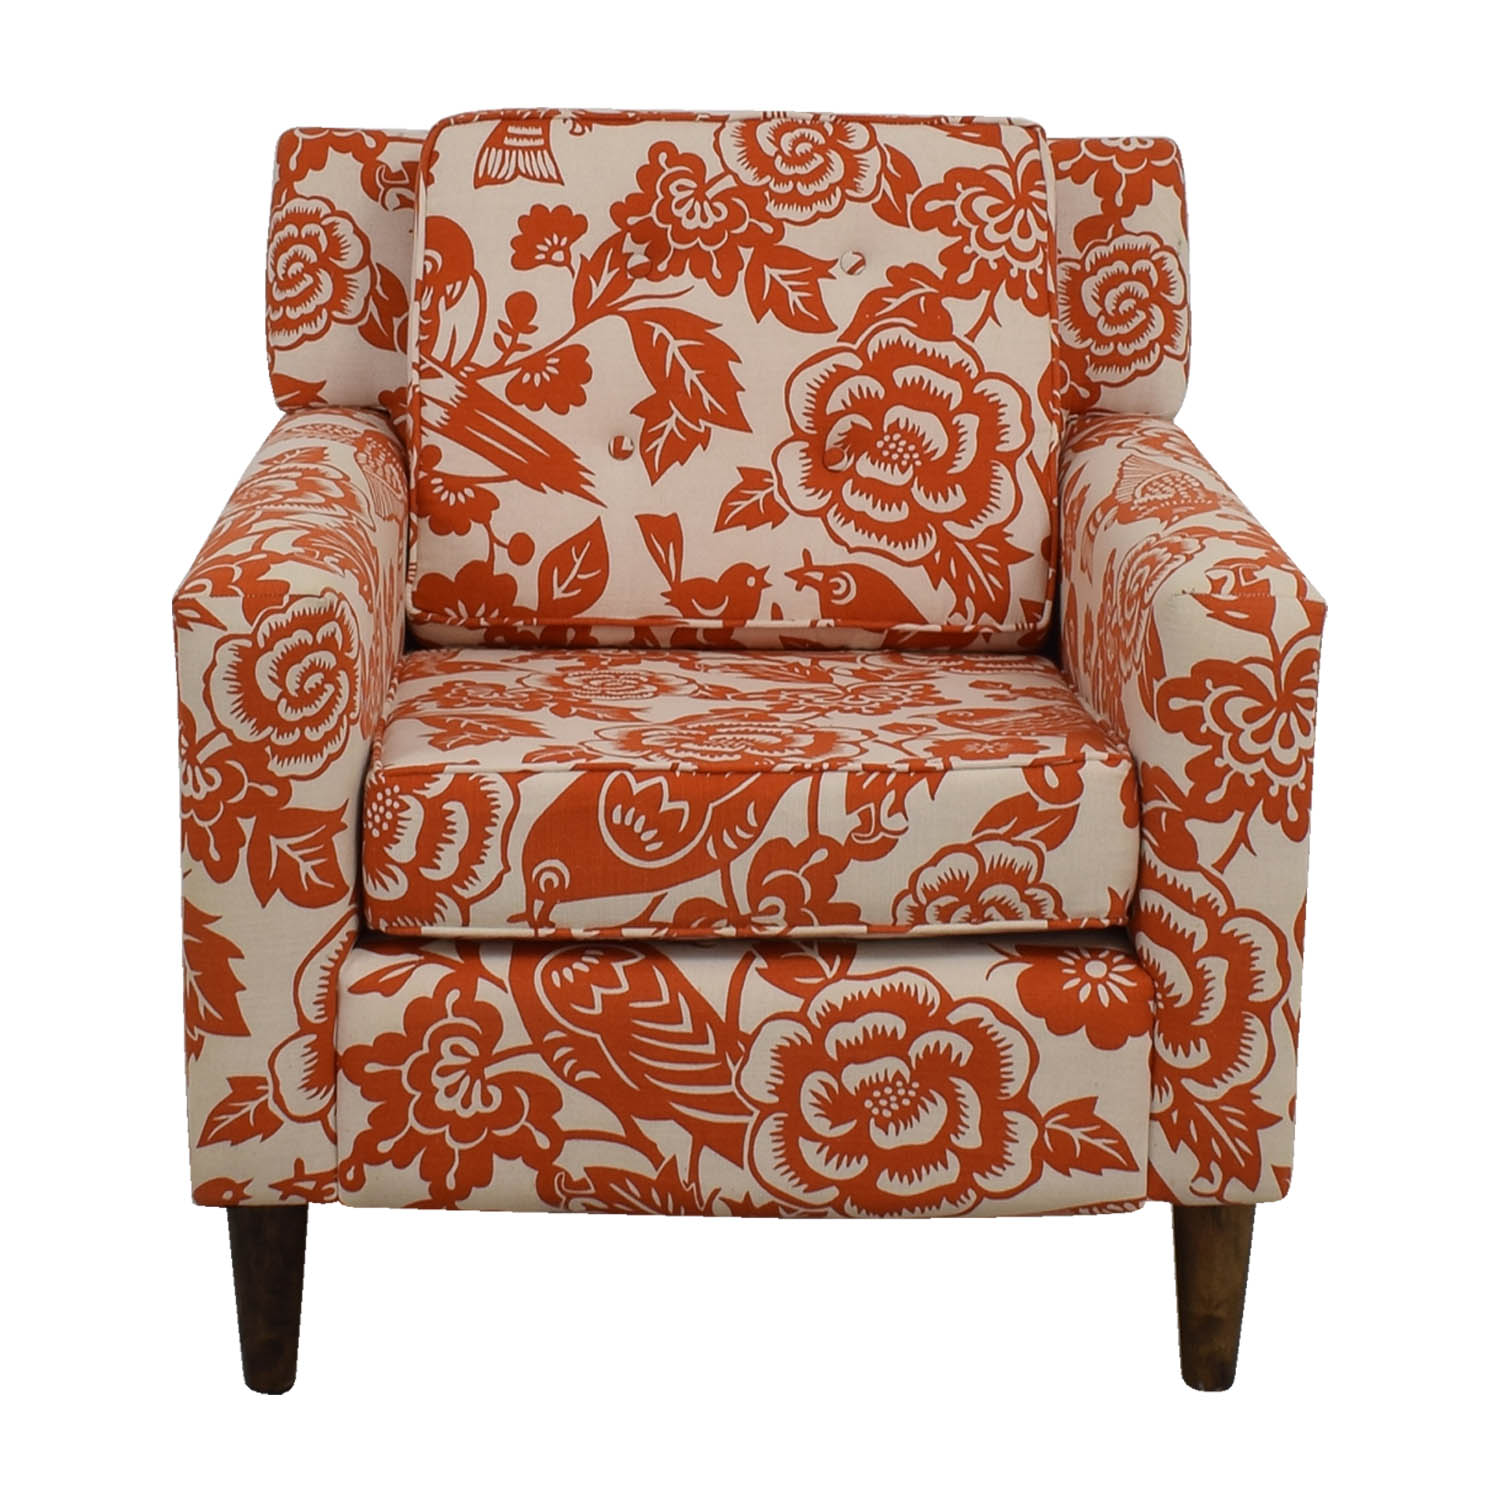 Floral Accent Chairs.90 Off Orange Floral Accent Armchair Chairs